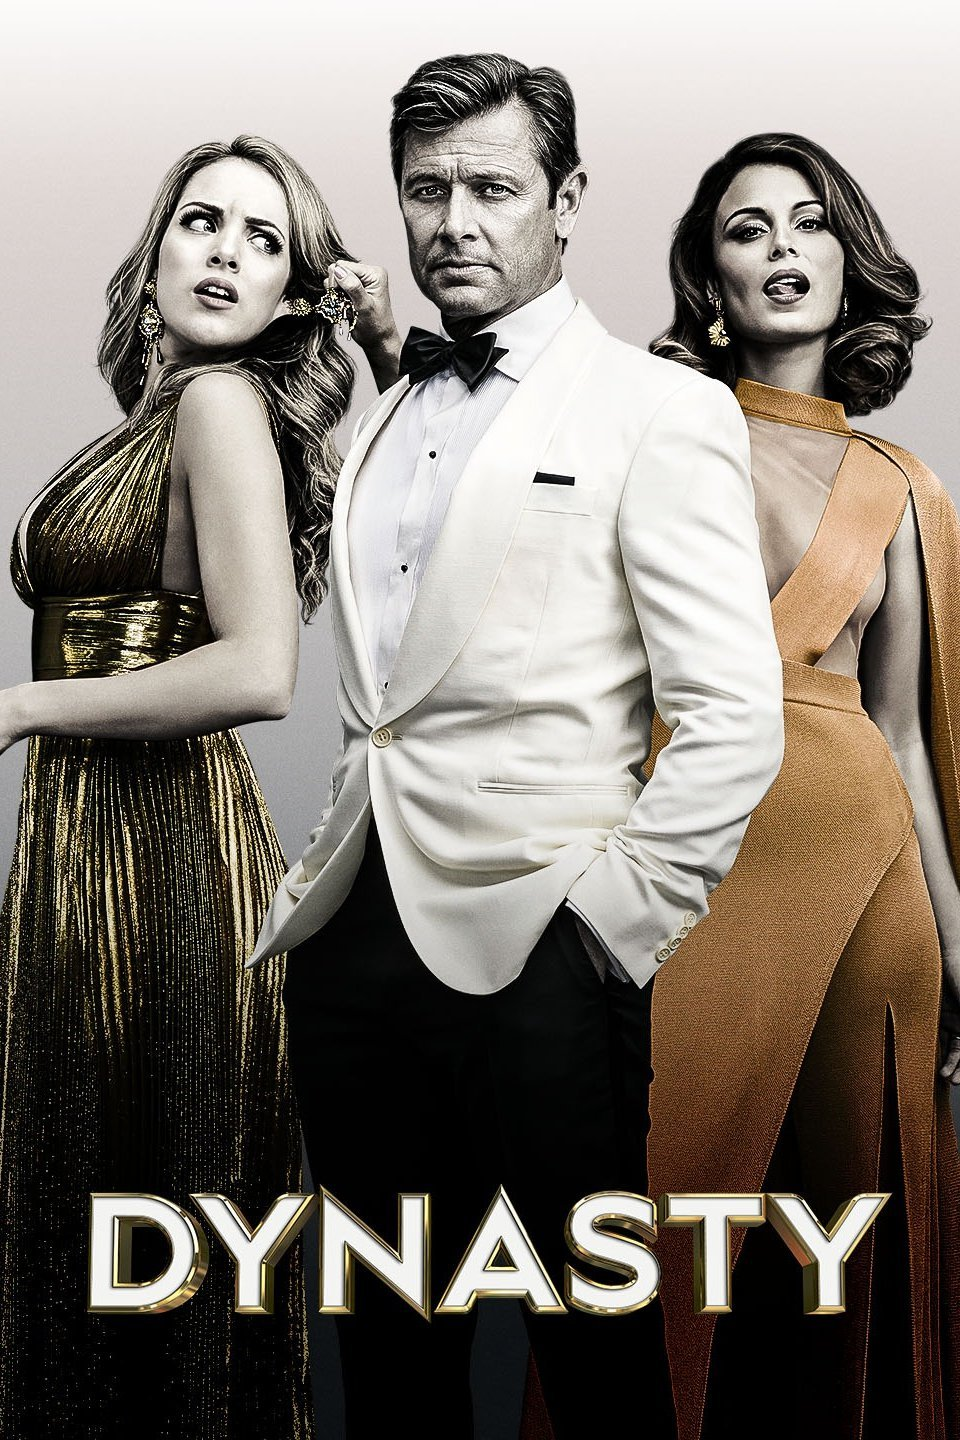 Dynasty Season 1 Episode 19 Download WEBRip 480p 720p